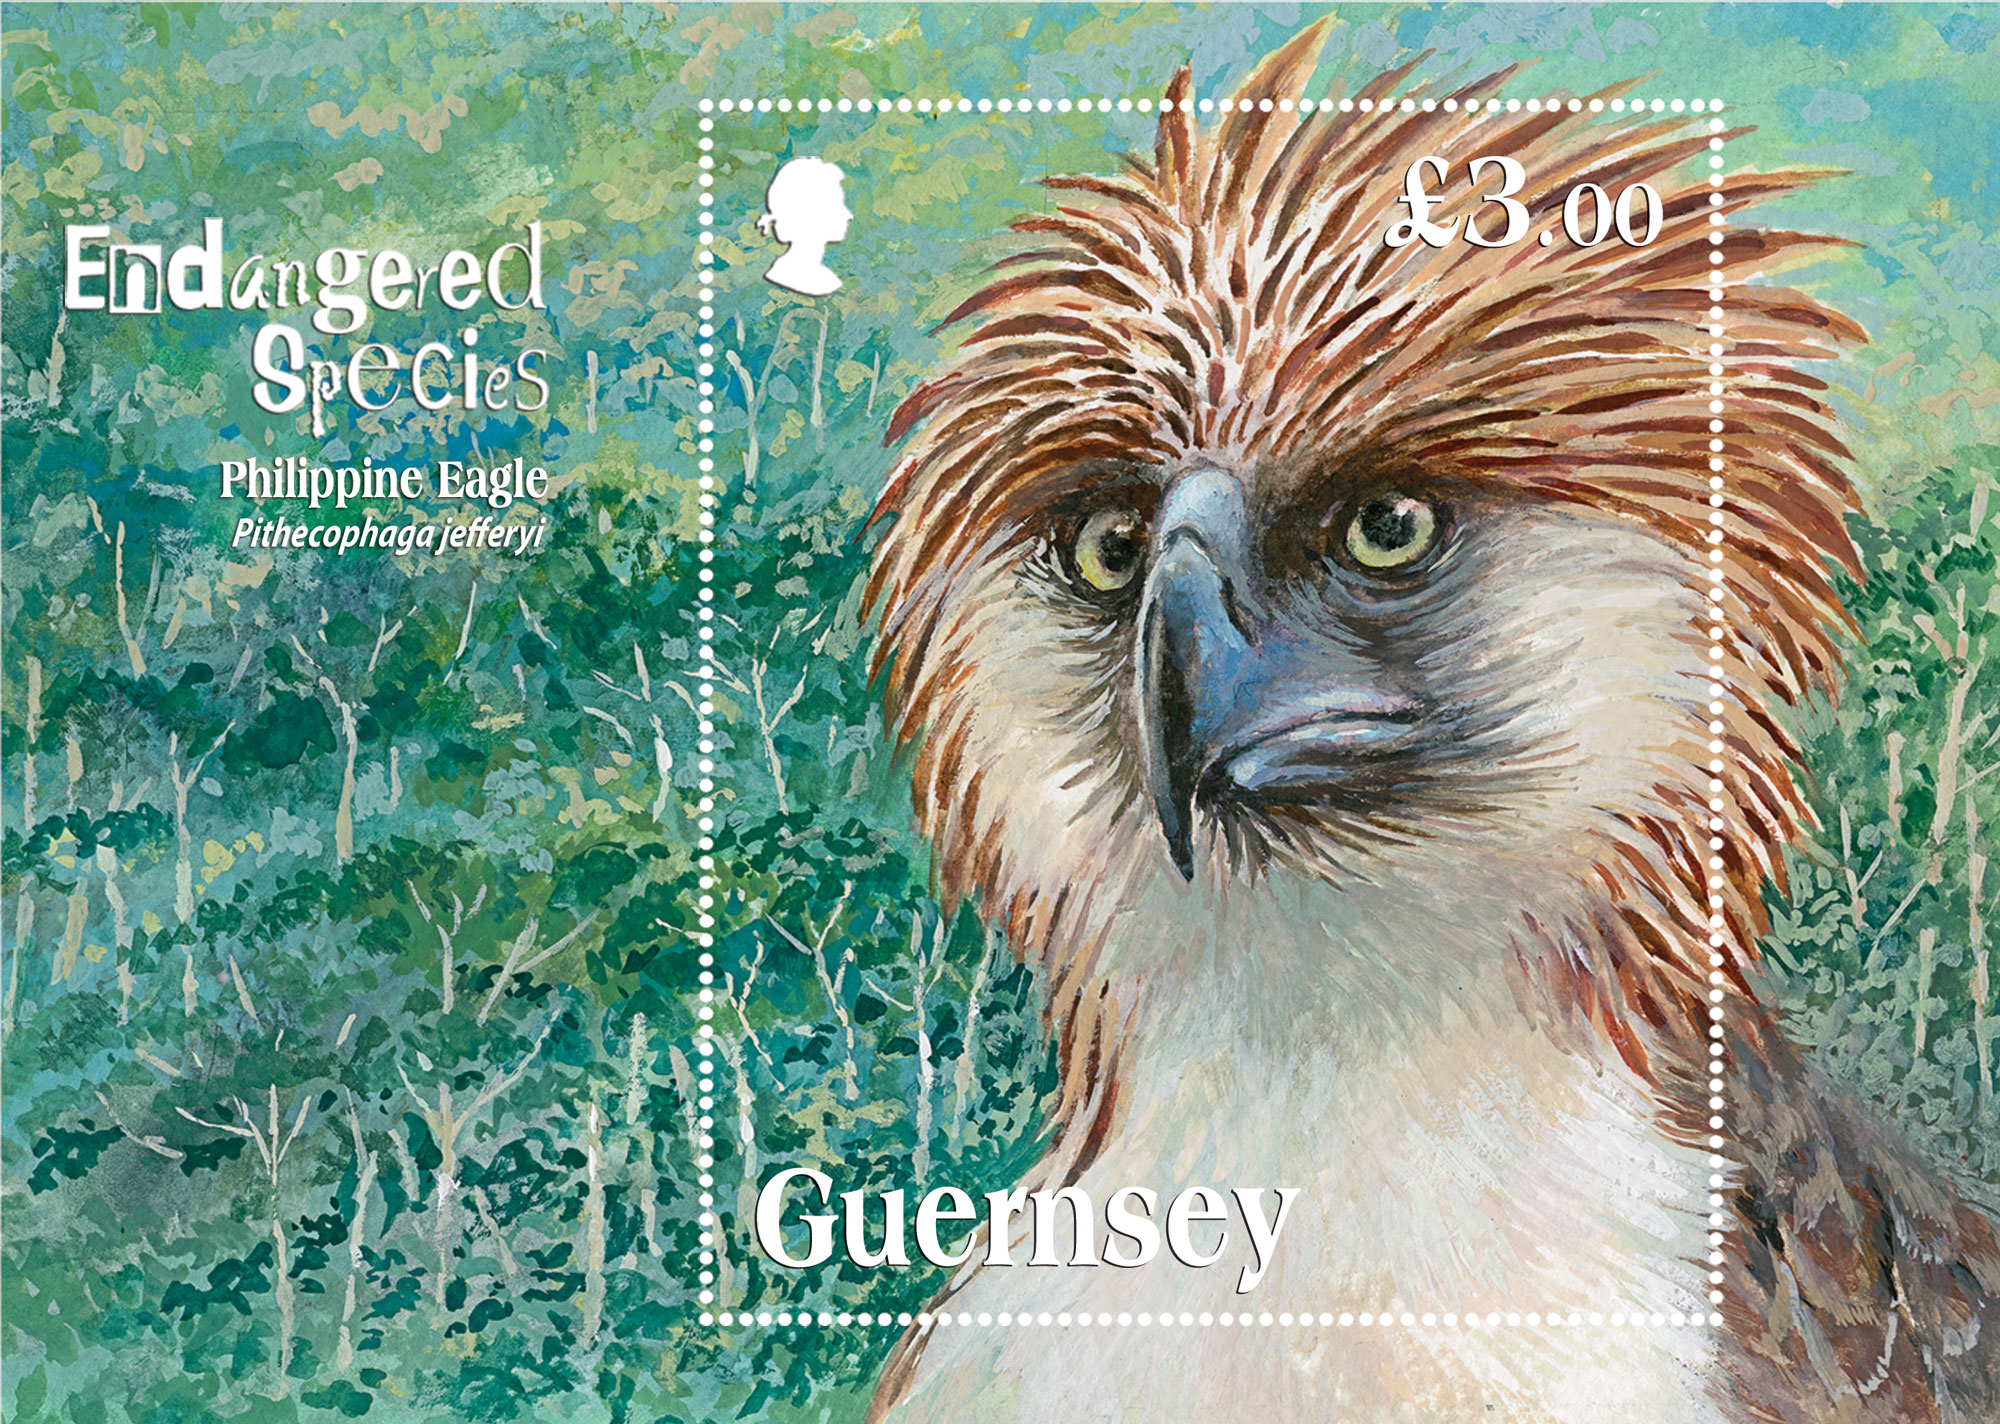 Critically endangered species depicted on stamp